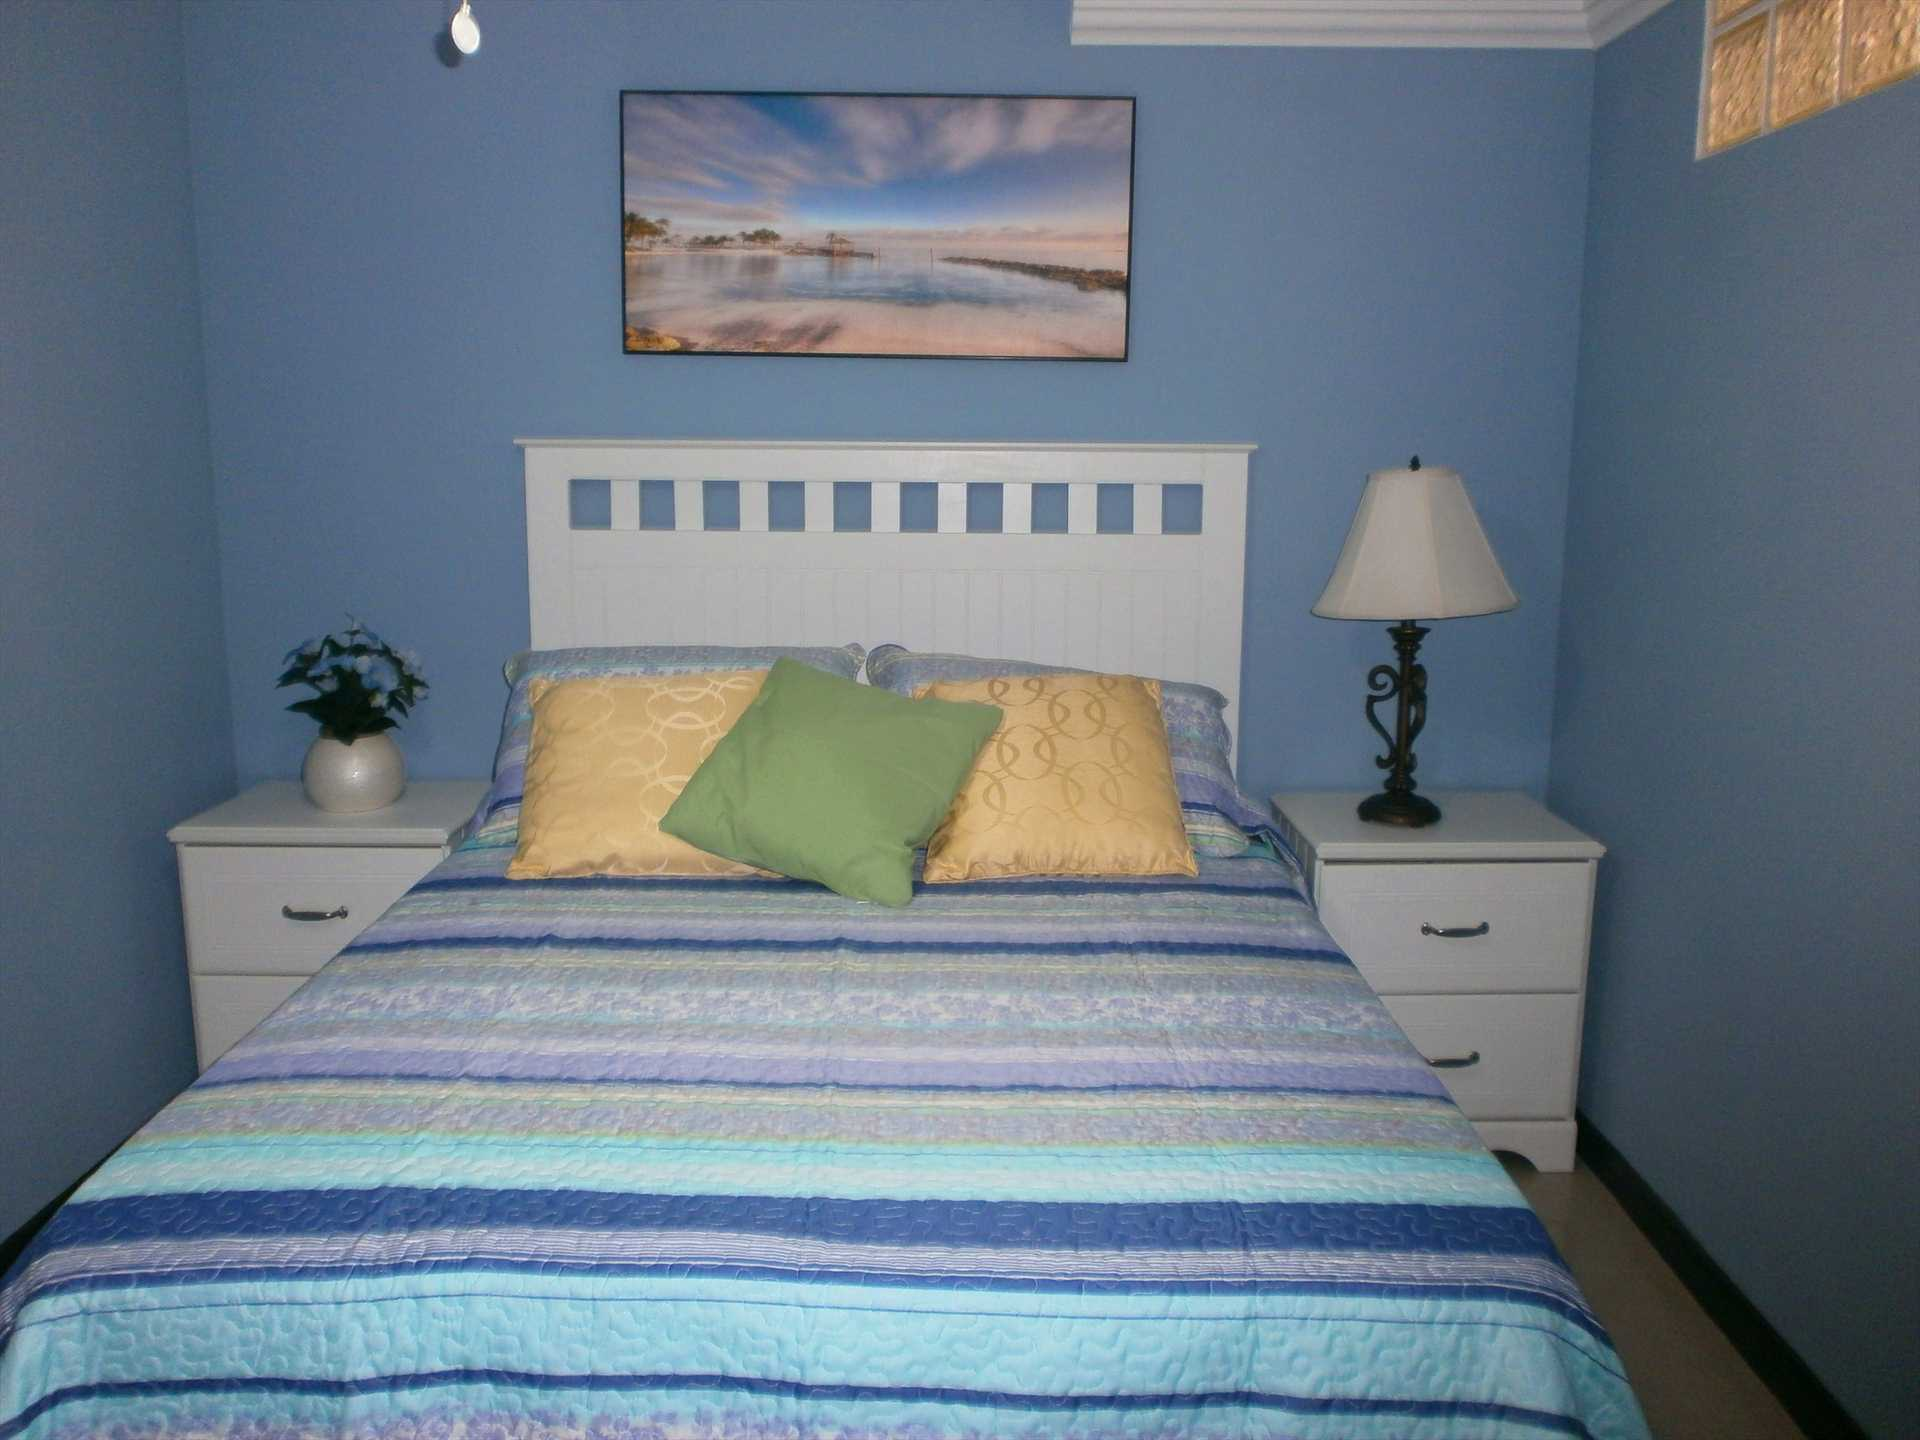 Second bedroom with double-size bed.